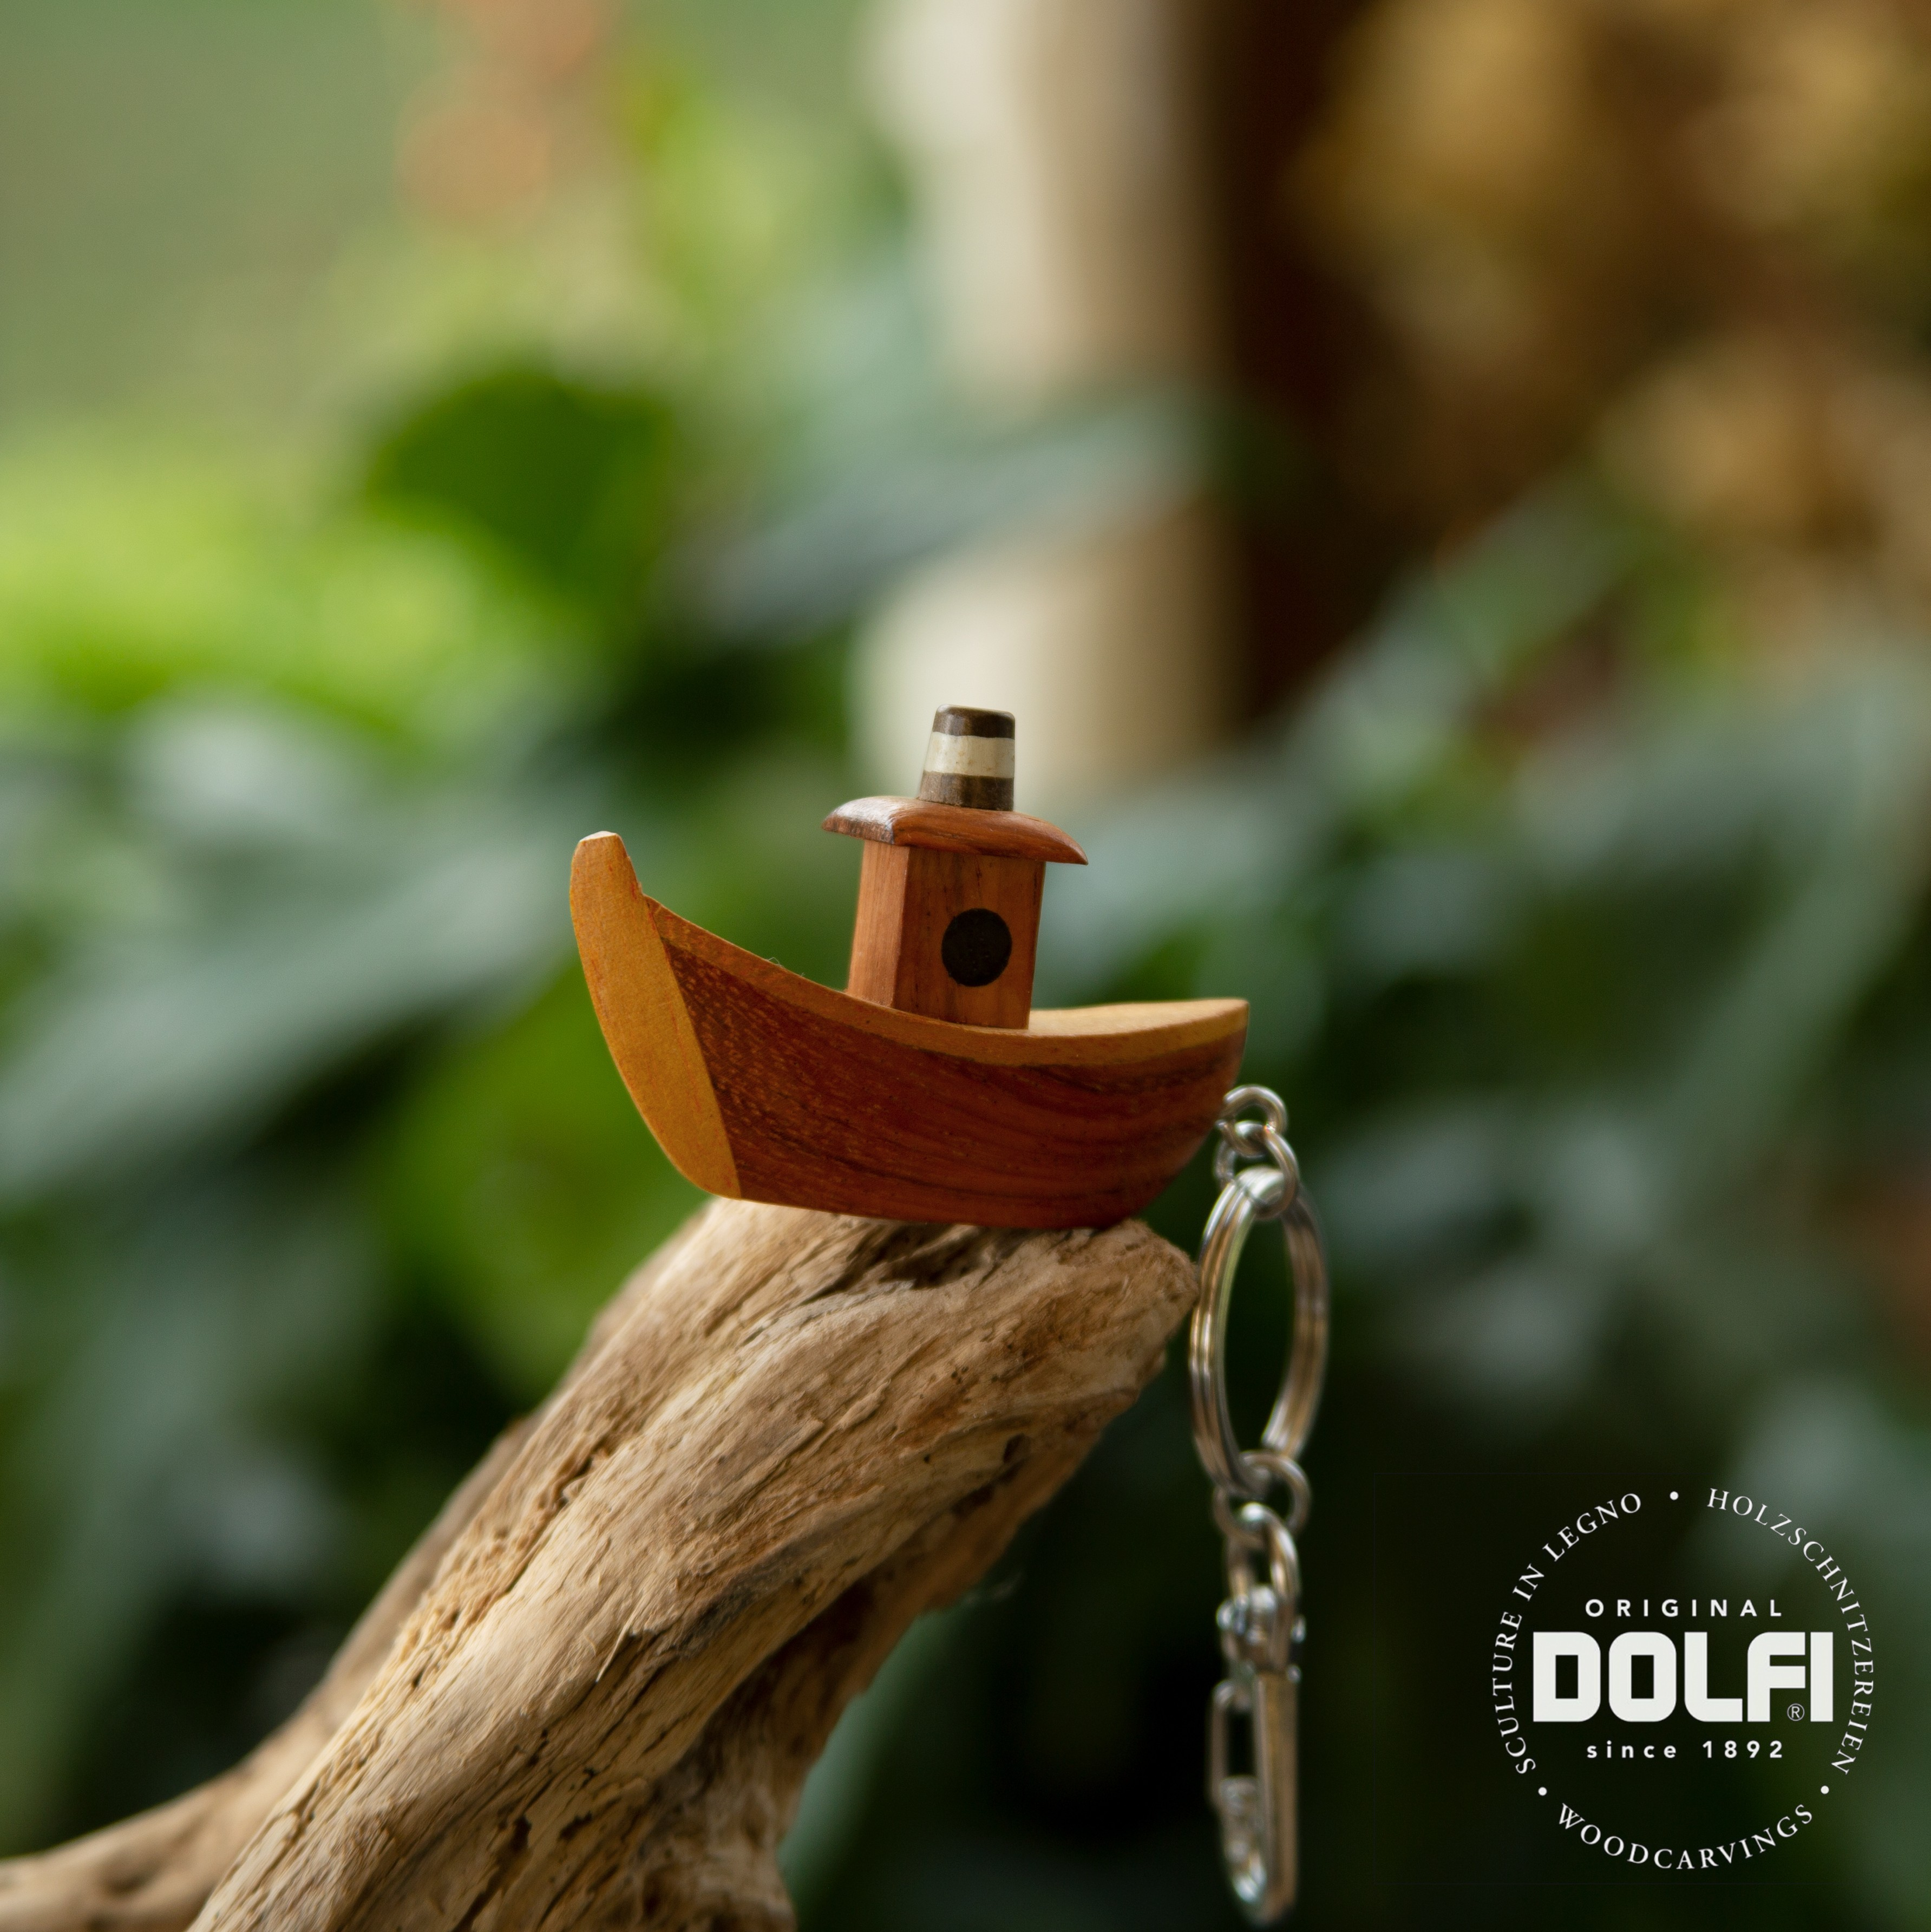 DISCOVER THE DOLFI WORLD